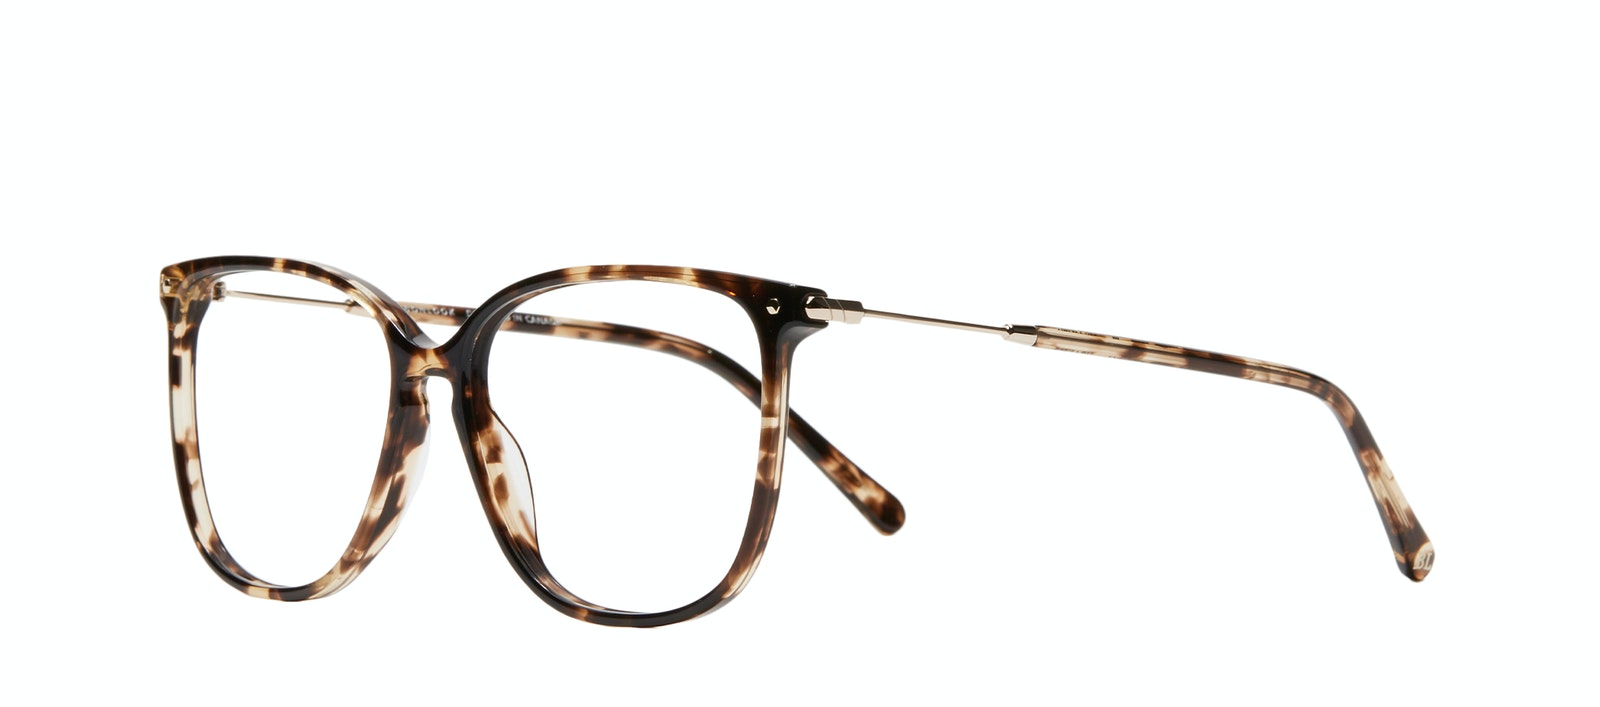 Affordable Fashion Glasses Square Eyeglasses Women Sonia M Snake Skin Tilt